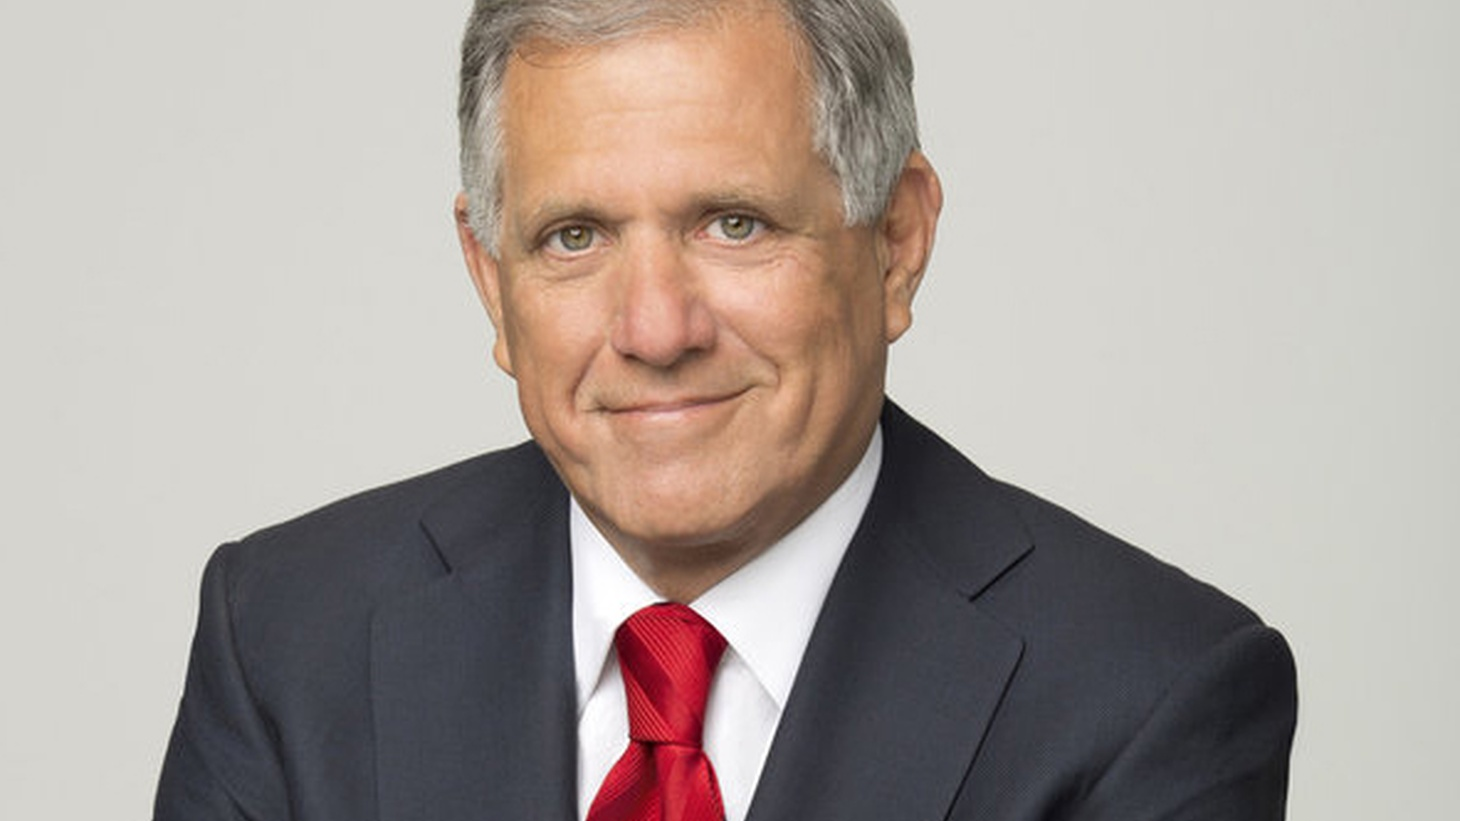 Late on Friday afternoon, a New Yorker investigation by Ronan Farrow dropped, revealing accusations of misconduct against Leslie Moonves by six women.